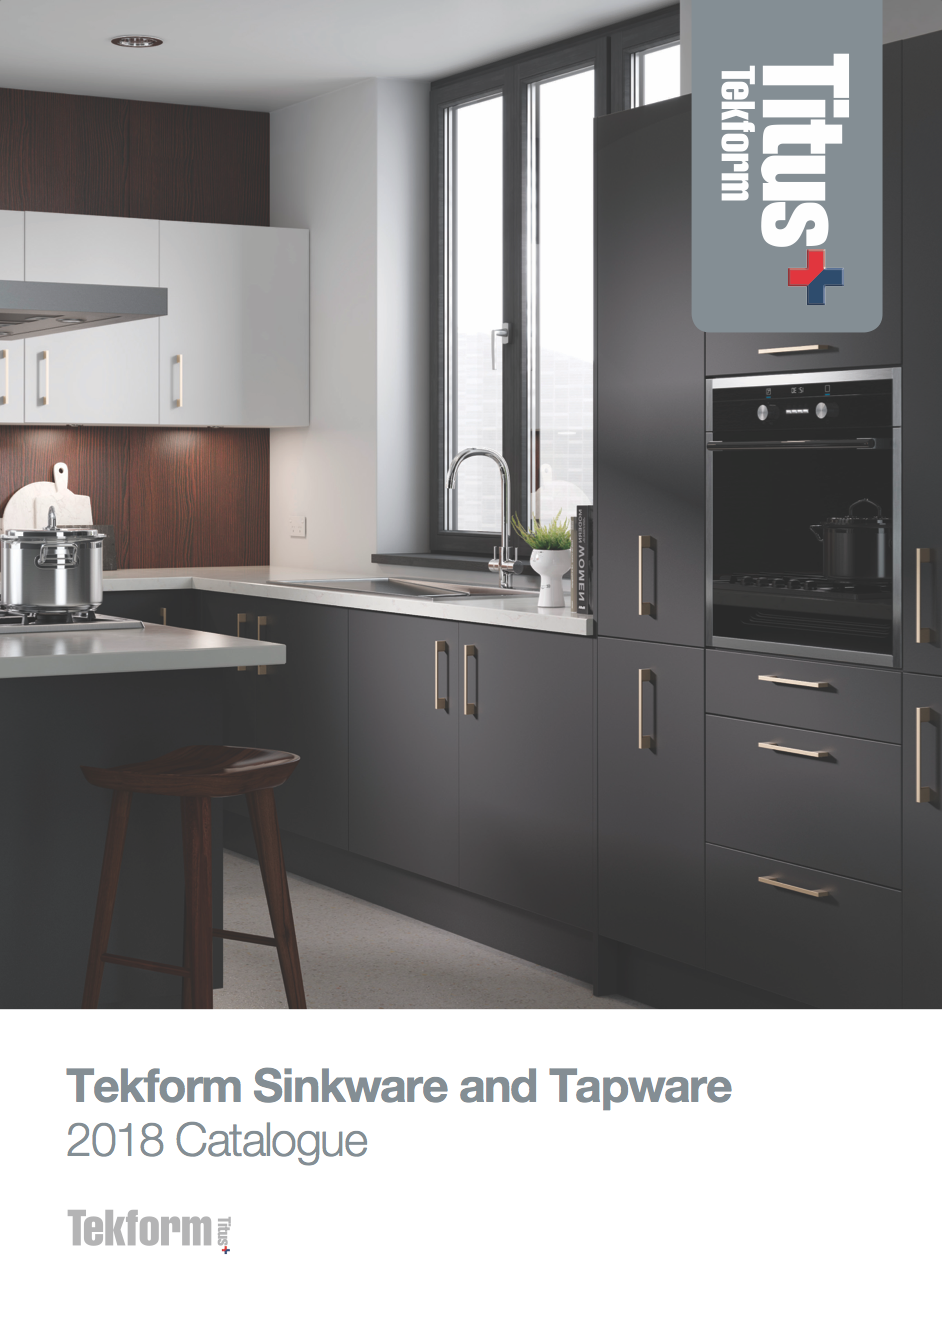 Sinkware and Tapware Brochure 2018